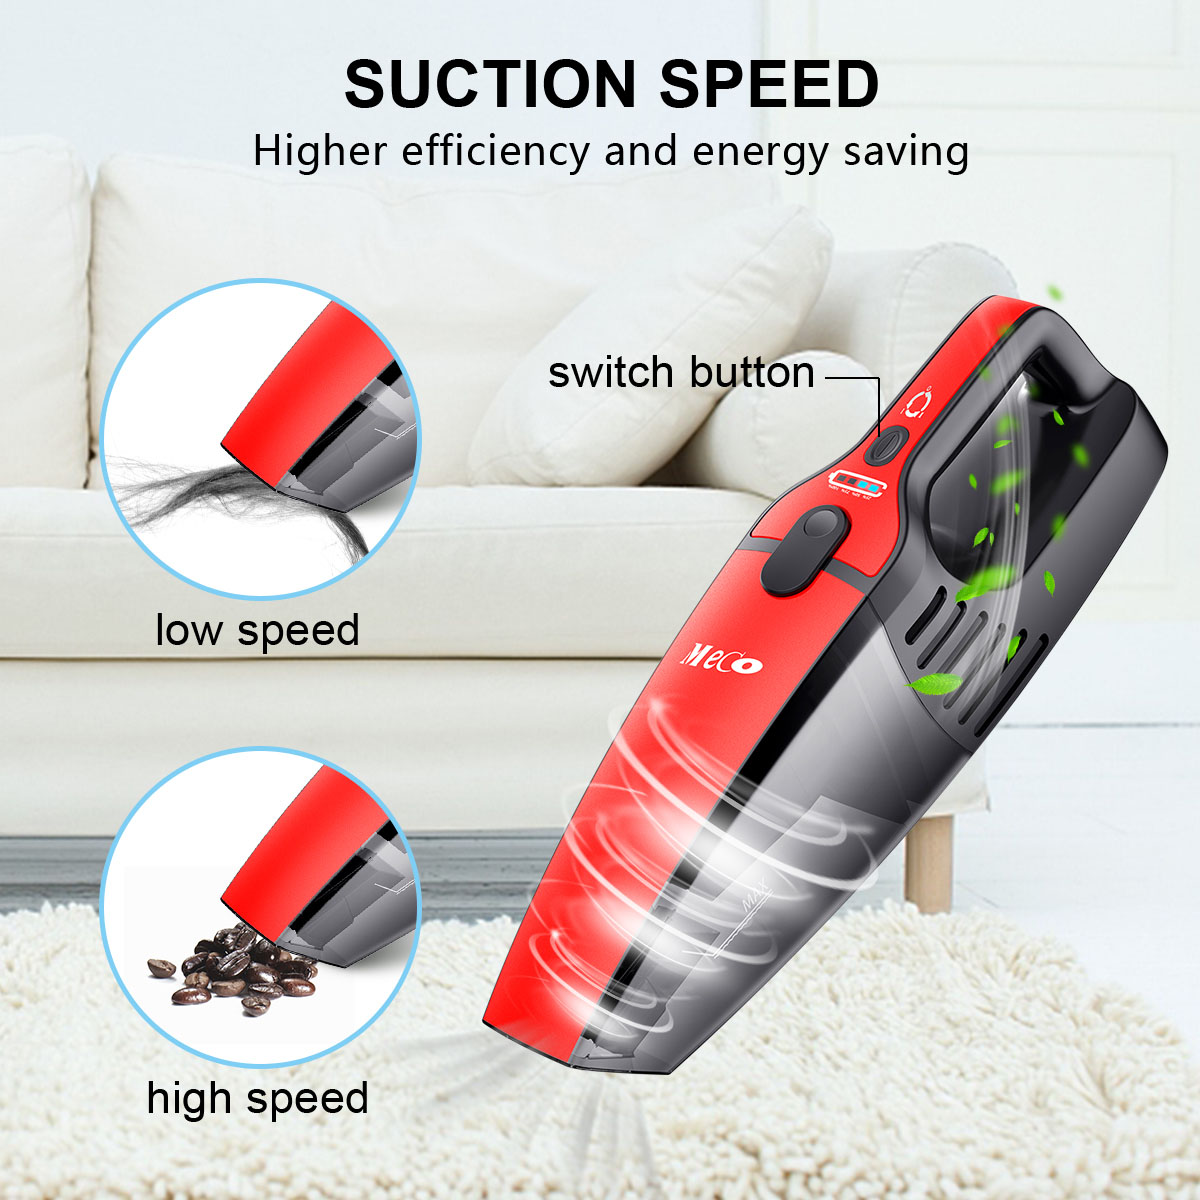 Powerful Wireless Handheld Cordless Rechargeable Car Vacuum Cleaner Wet Dry New Handheld Home Auto Car Electronic Vacuum CleanerPowerful Wireless Handheld Cordless Rechargeable Car Vacuum Cleaner Wet Dry New Handheld Home Auto Car Electronic Vacuum Cleaner